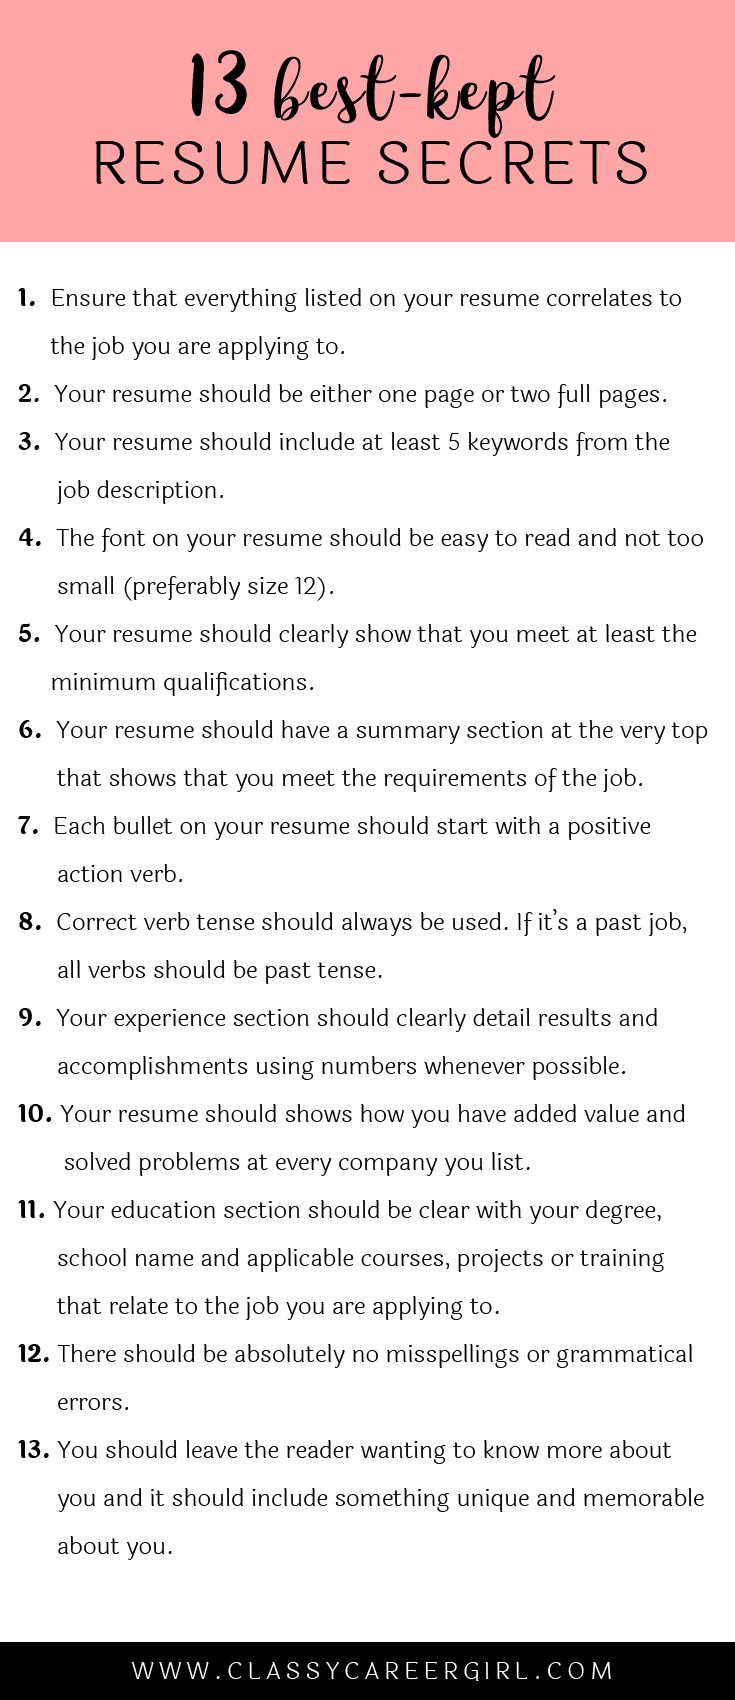 Opposenewapstandardsus  Remarkable  Ideas About Resume On Pinterest  Cv Format Resume Cv And  With Magnificent Some Hiring Managers Will Toss Your Resume Out If You Dont Know These  With Endearing Template For Resume Free Also Cota Resume In Addition Finance Intern Resume And Sample Student Resumes As Well As Resume Reference Sheet Additionally Hair Stylist Resume Examples From Pinterestcom With Opposenewapstandardsus  Magnificent  Ideas About Resume On Pinterest  Cv Format Resume Cv And  With Endearing Some Hiring Managers Will Toss Your Resume Out If You Dont Know These  And Remarkable Template For Resume Free Also Cota Resume In Addition Finance Intern Resume From Pinterestcom